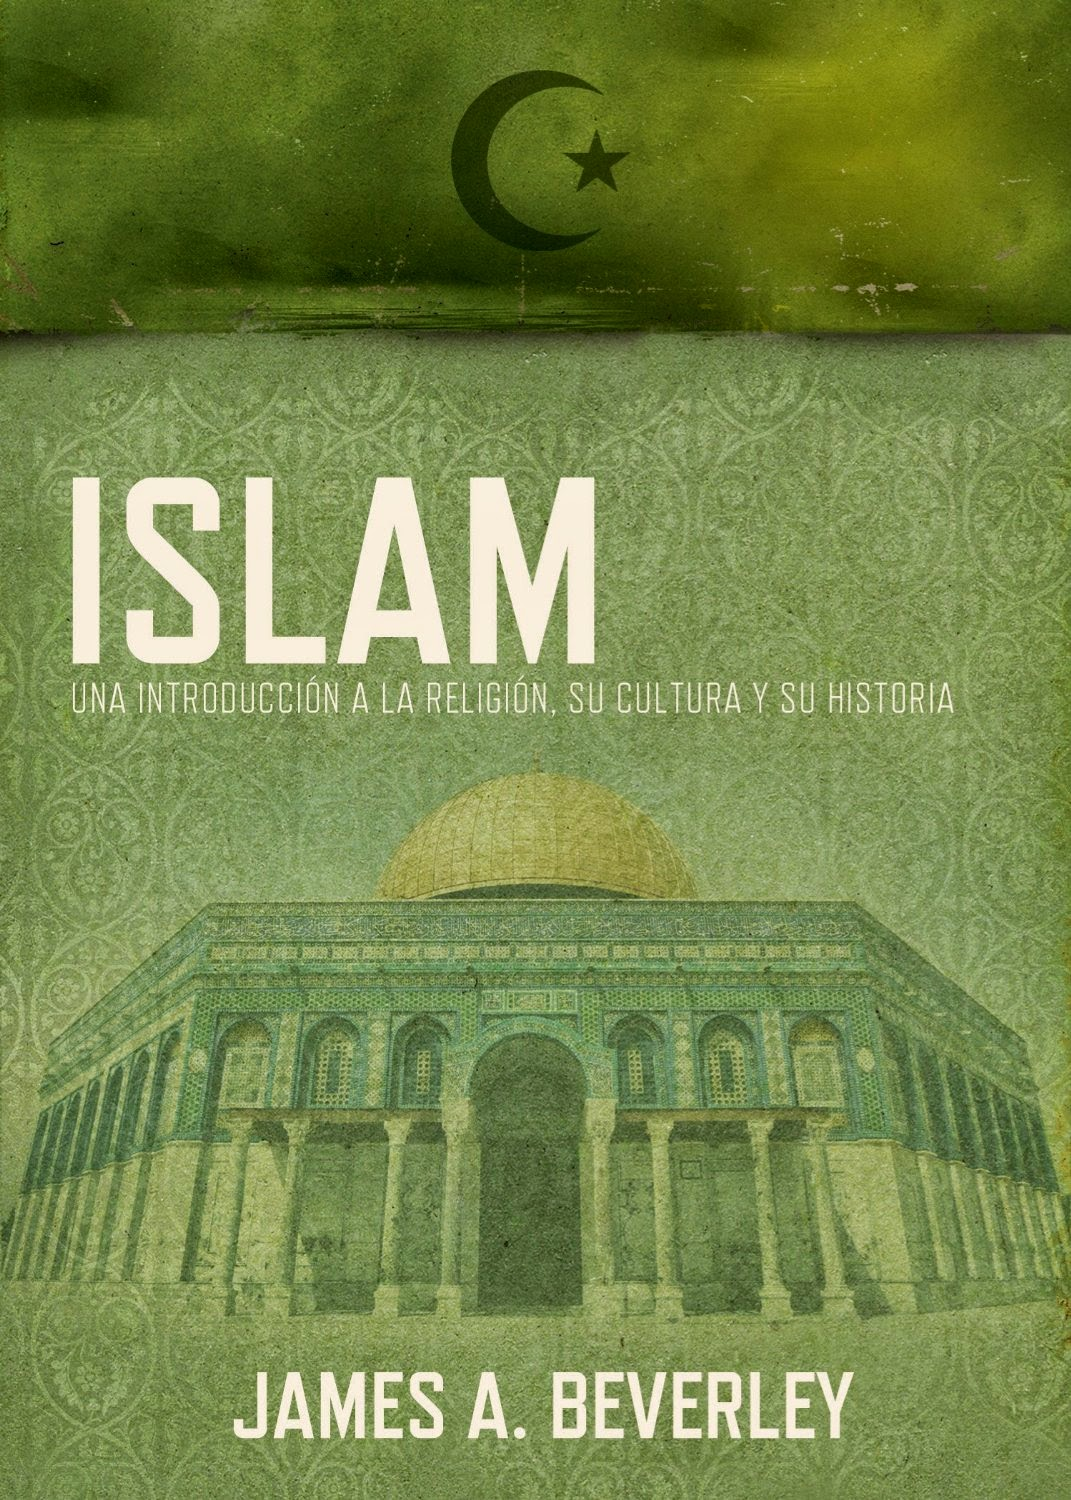 James A. Beverley-Islam-